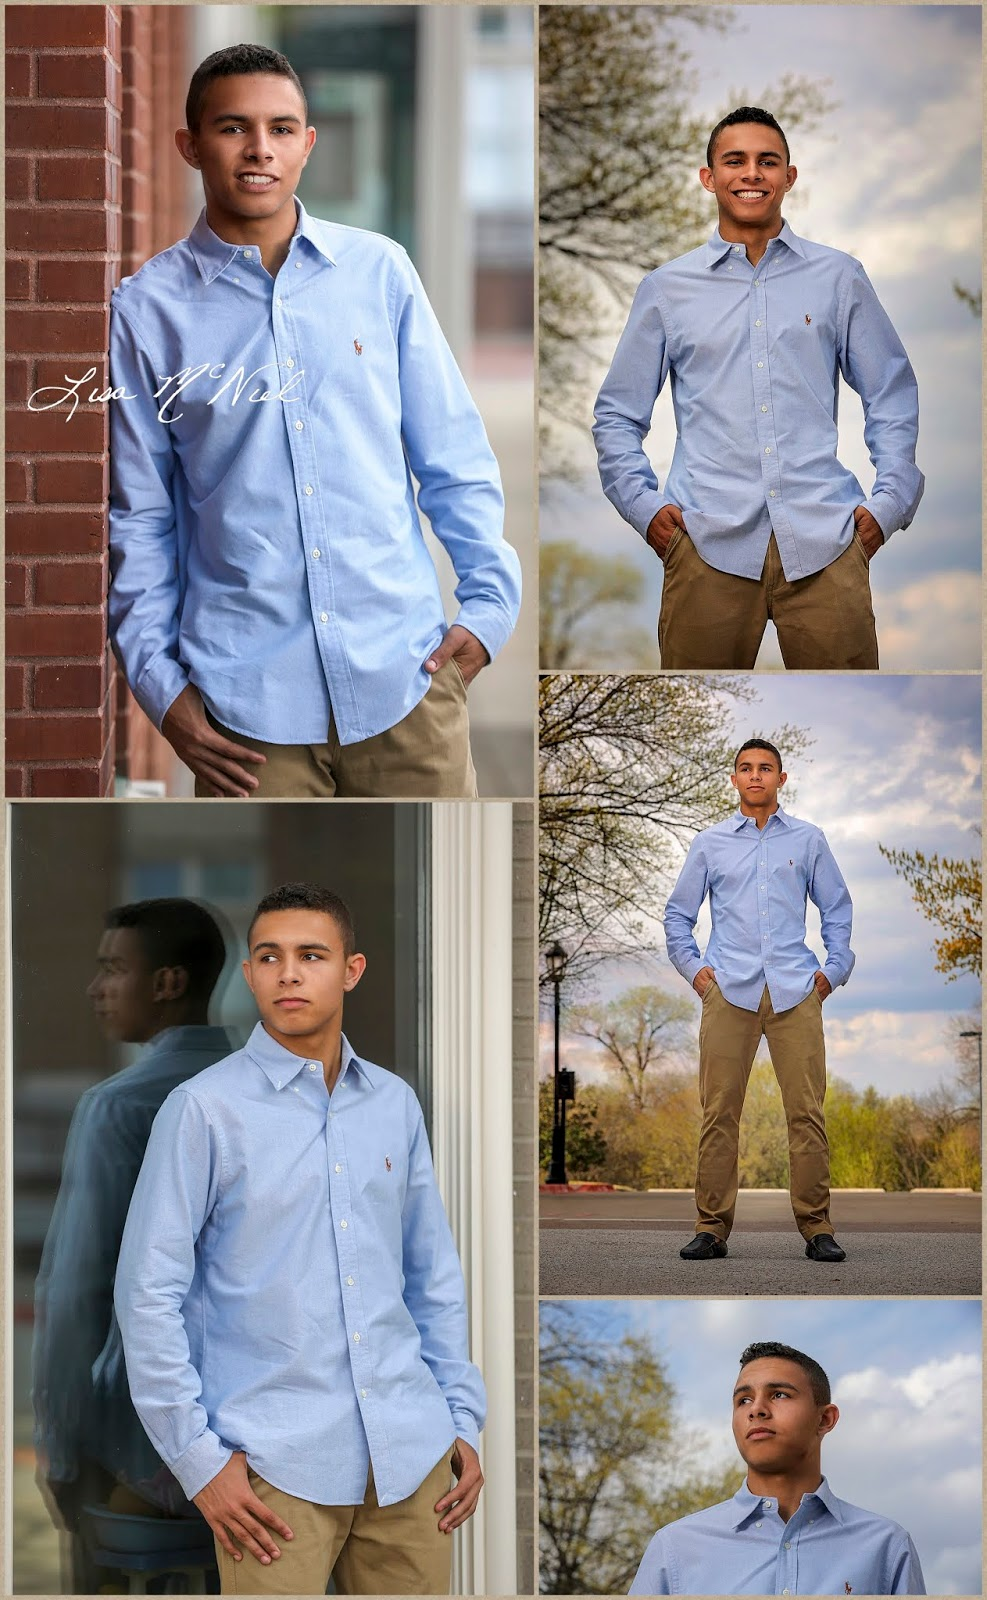 collage of young man wearing blue shirt